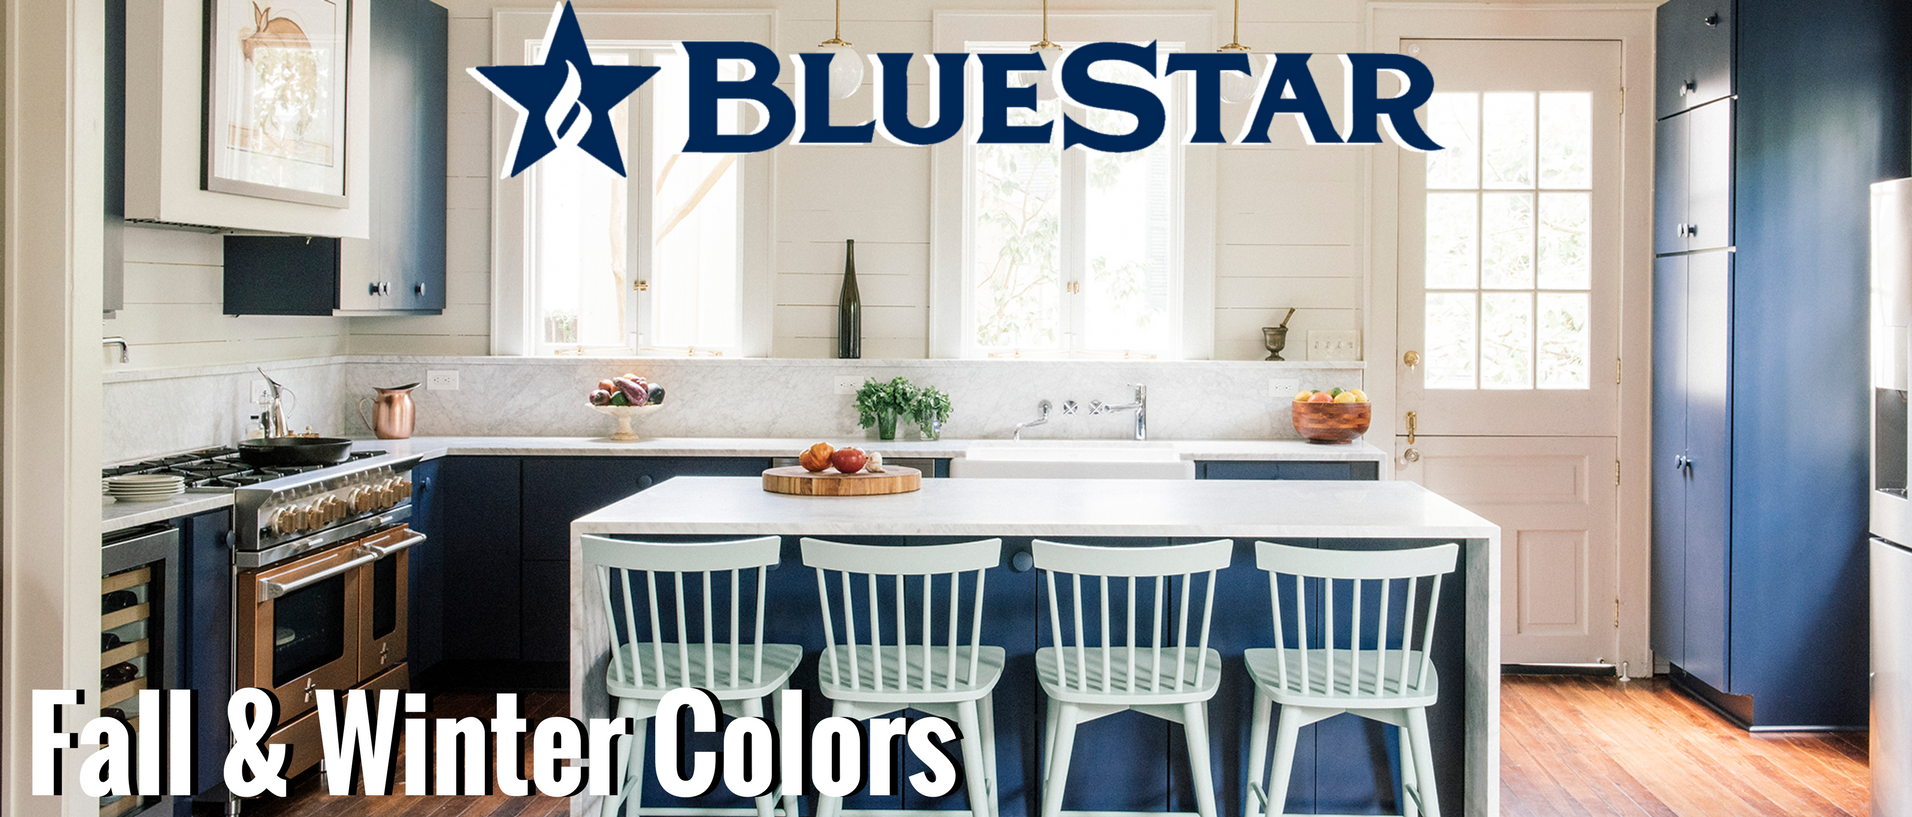 BlueStar Fall and Winter Colors Banner